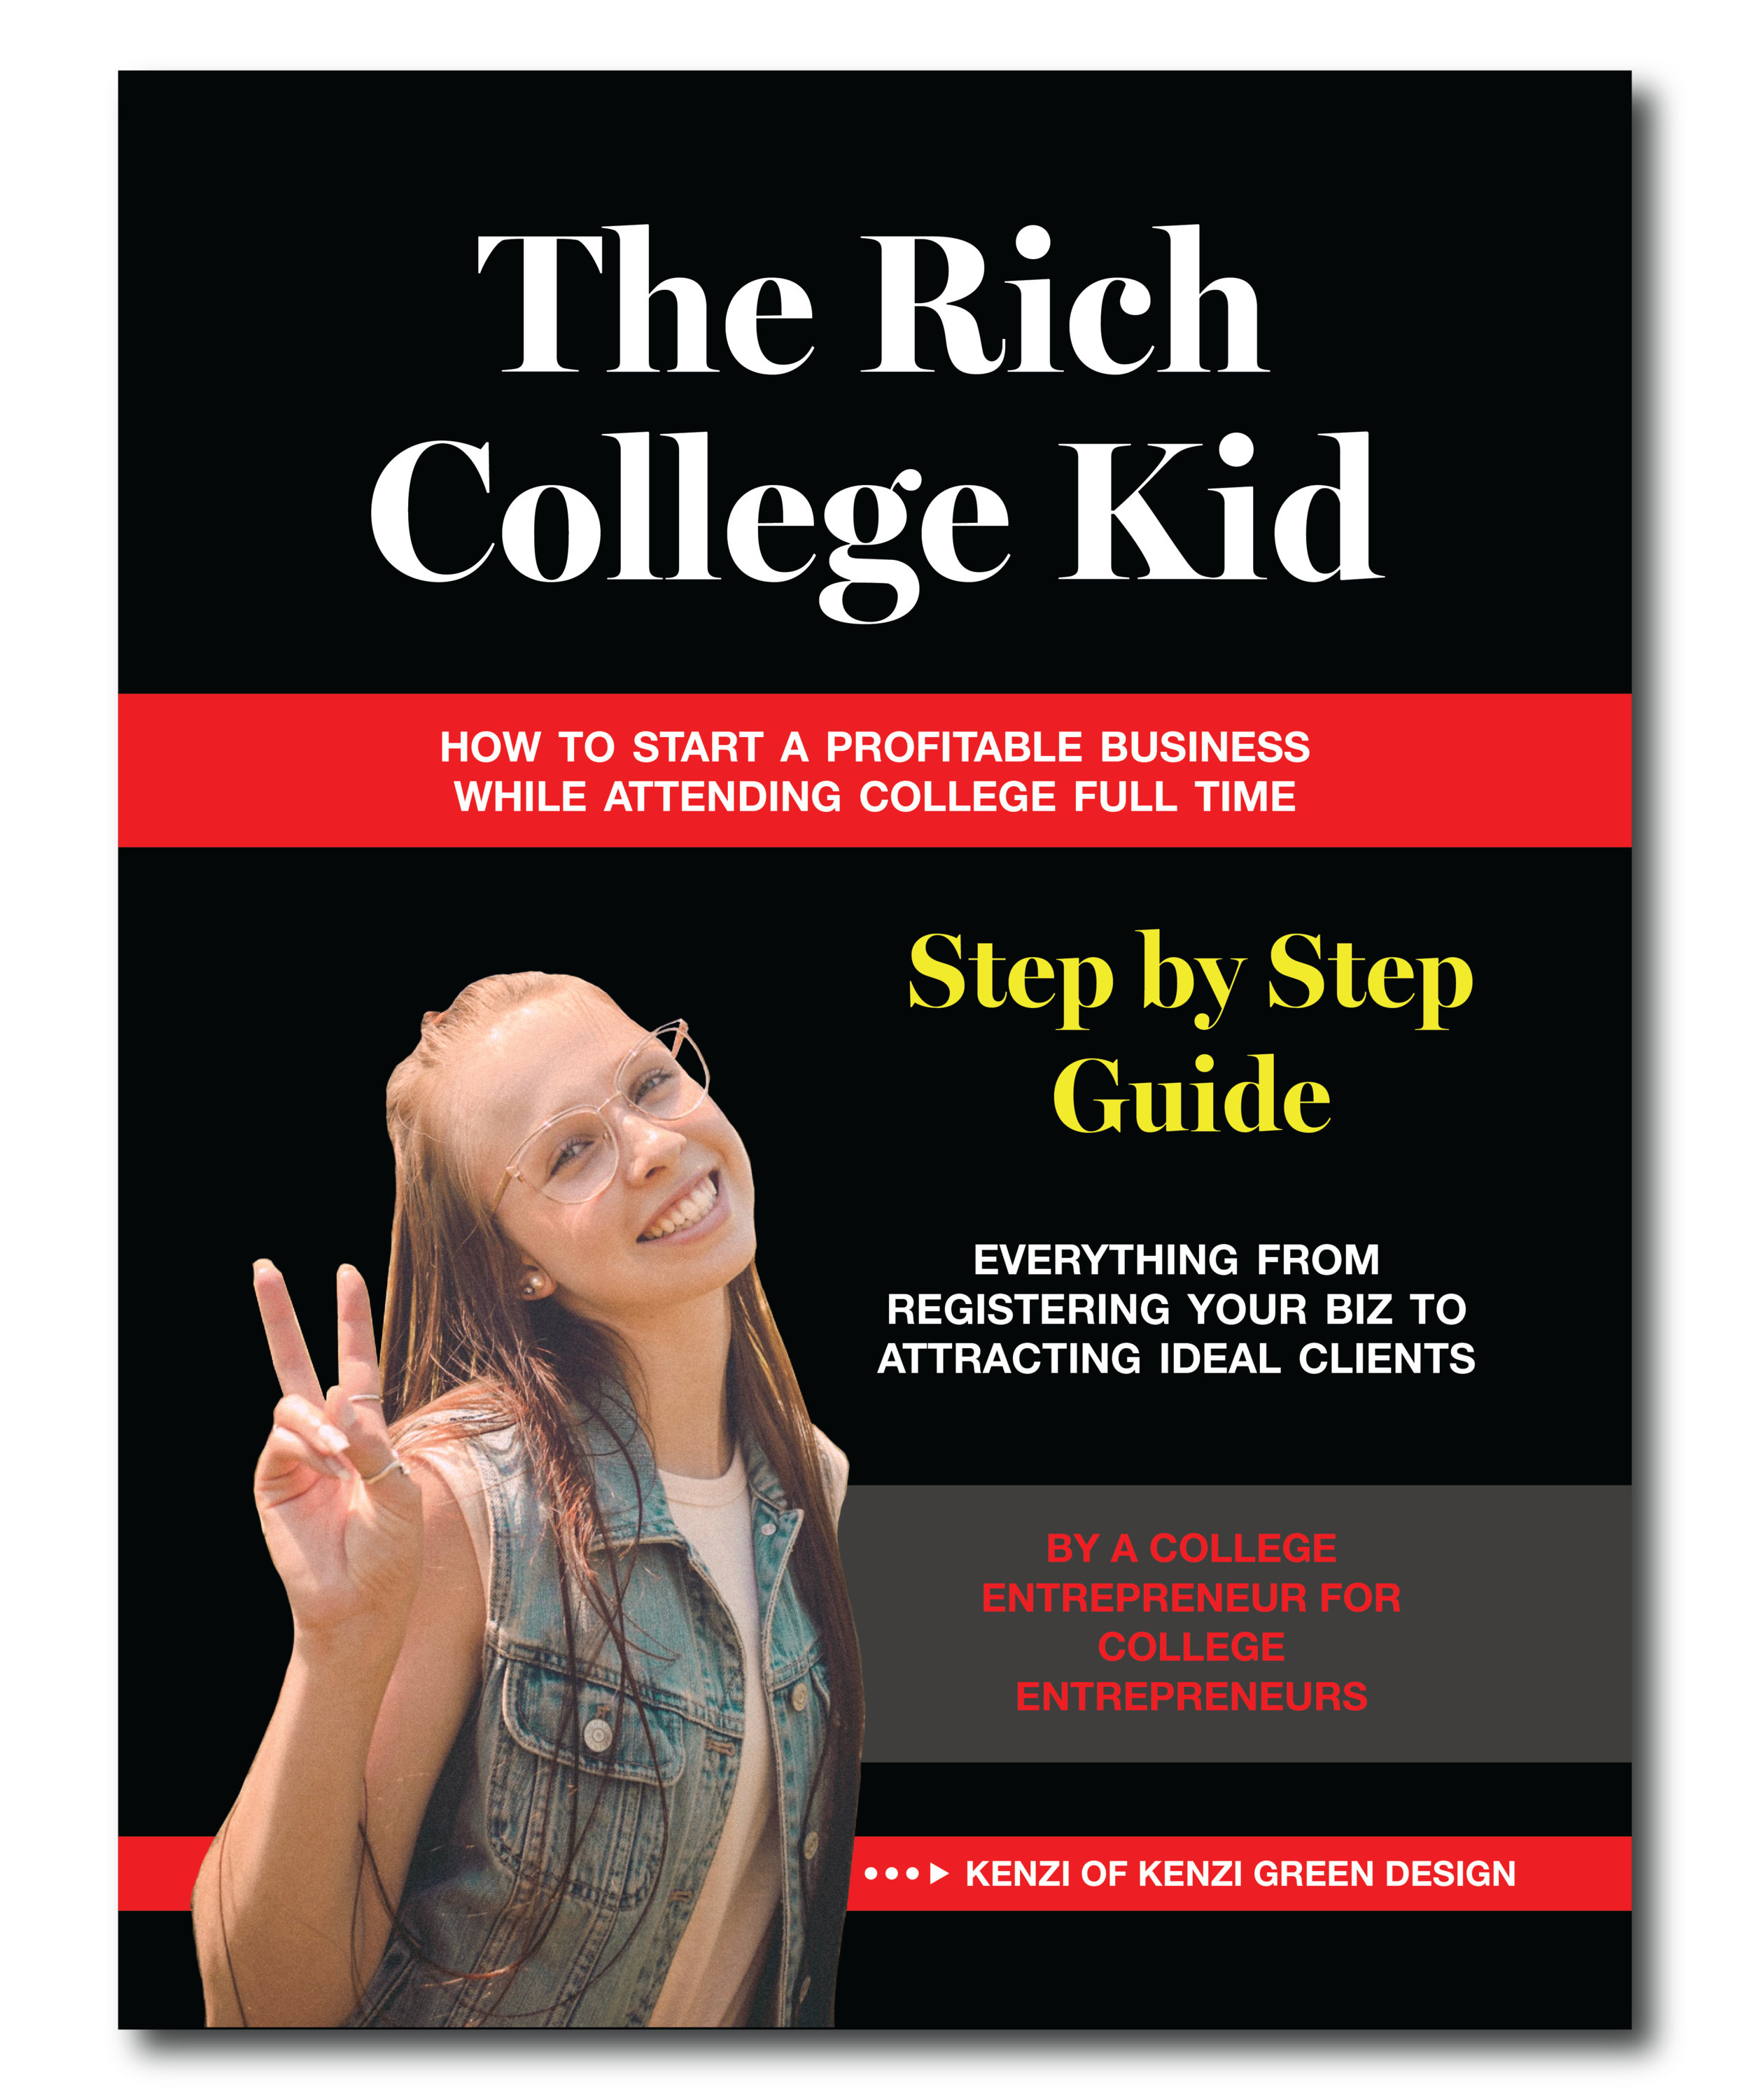 The Rich College Kid landing page book-01.png